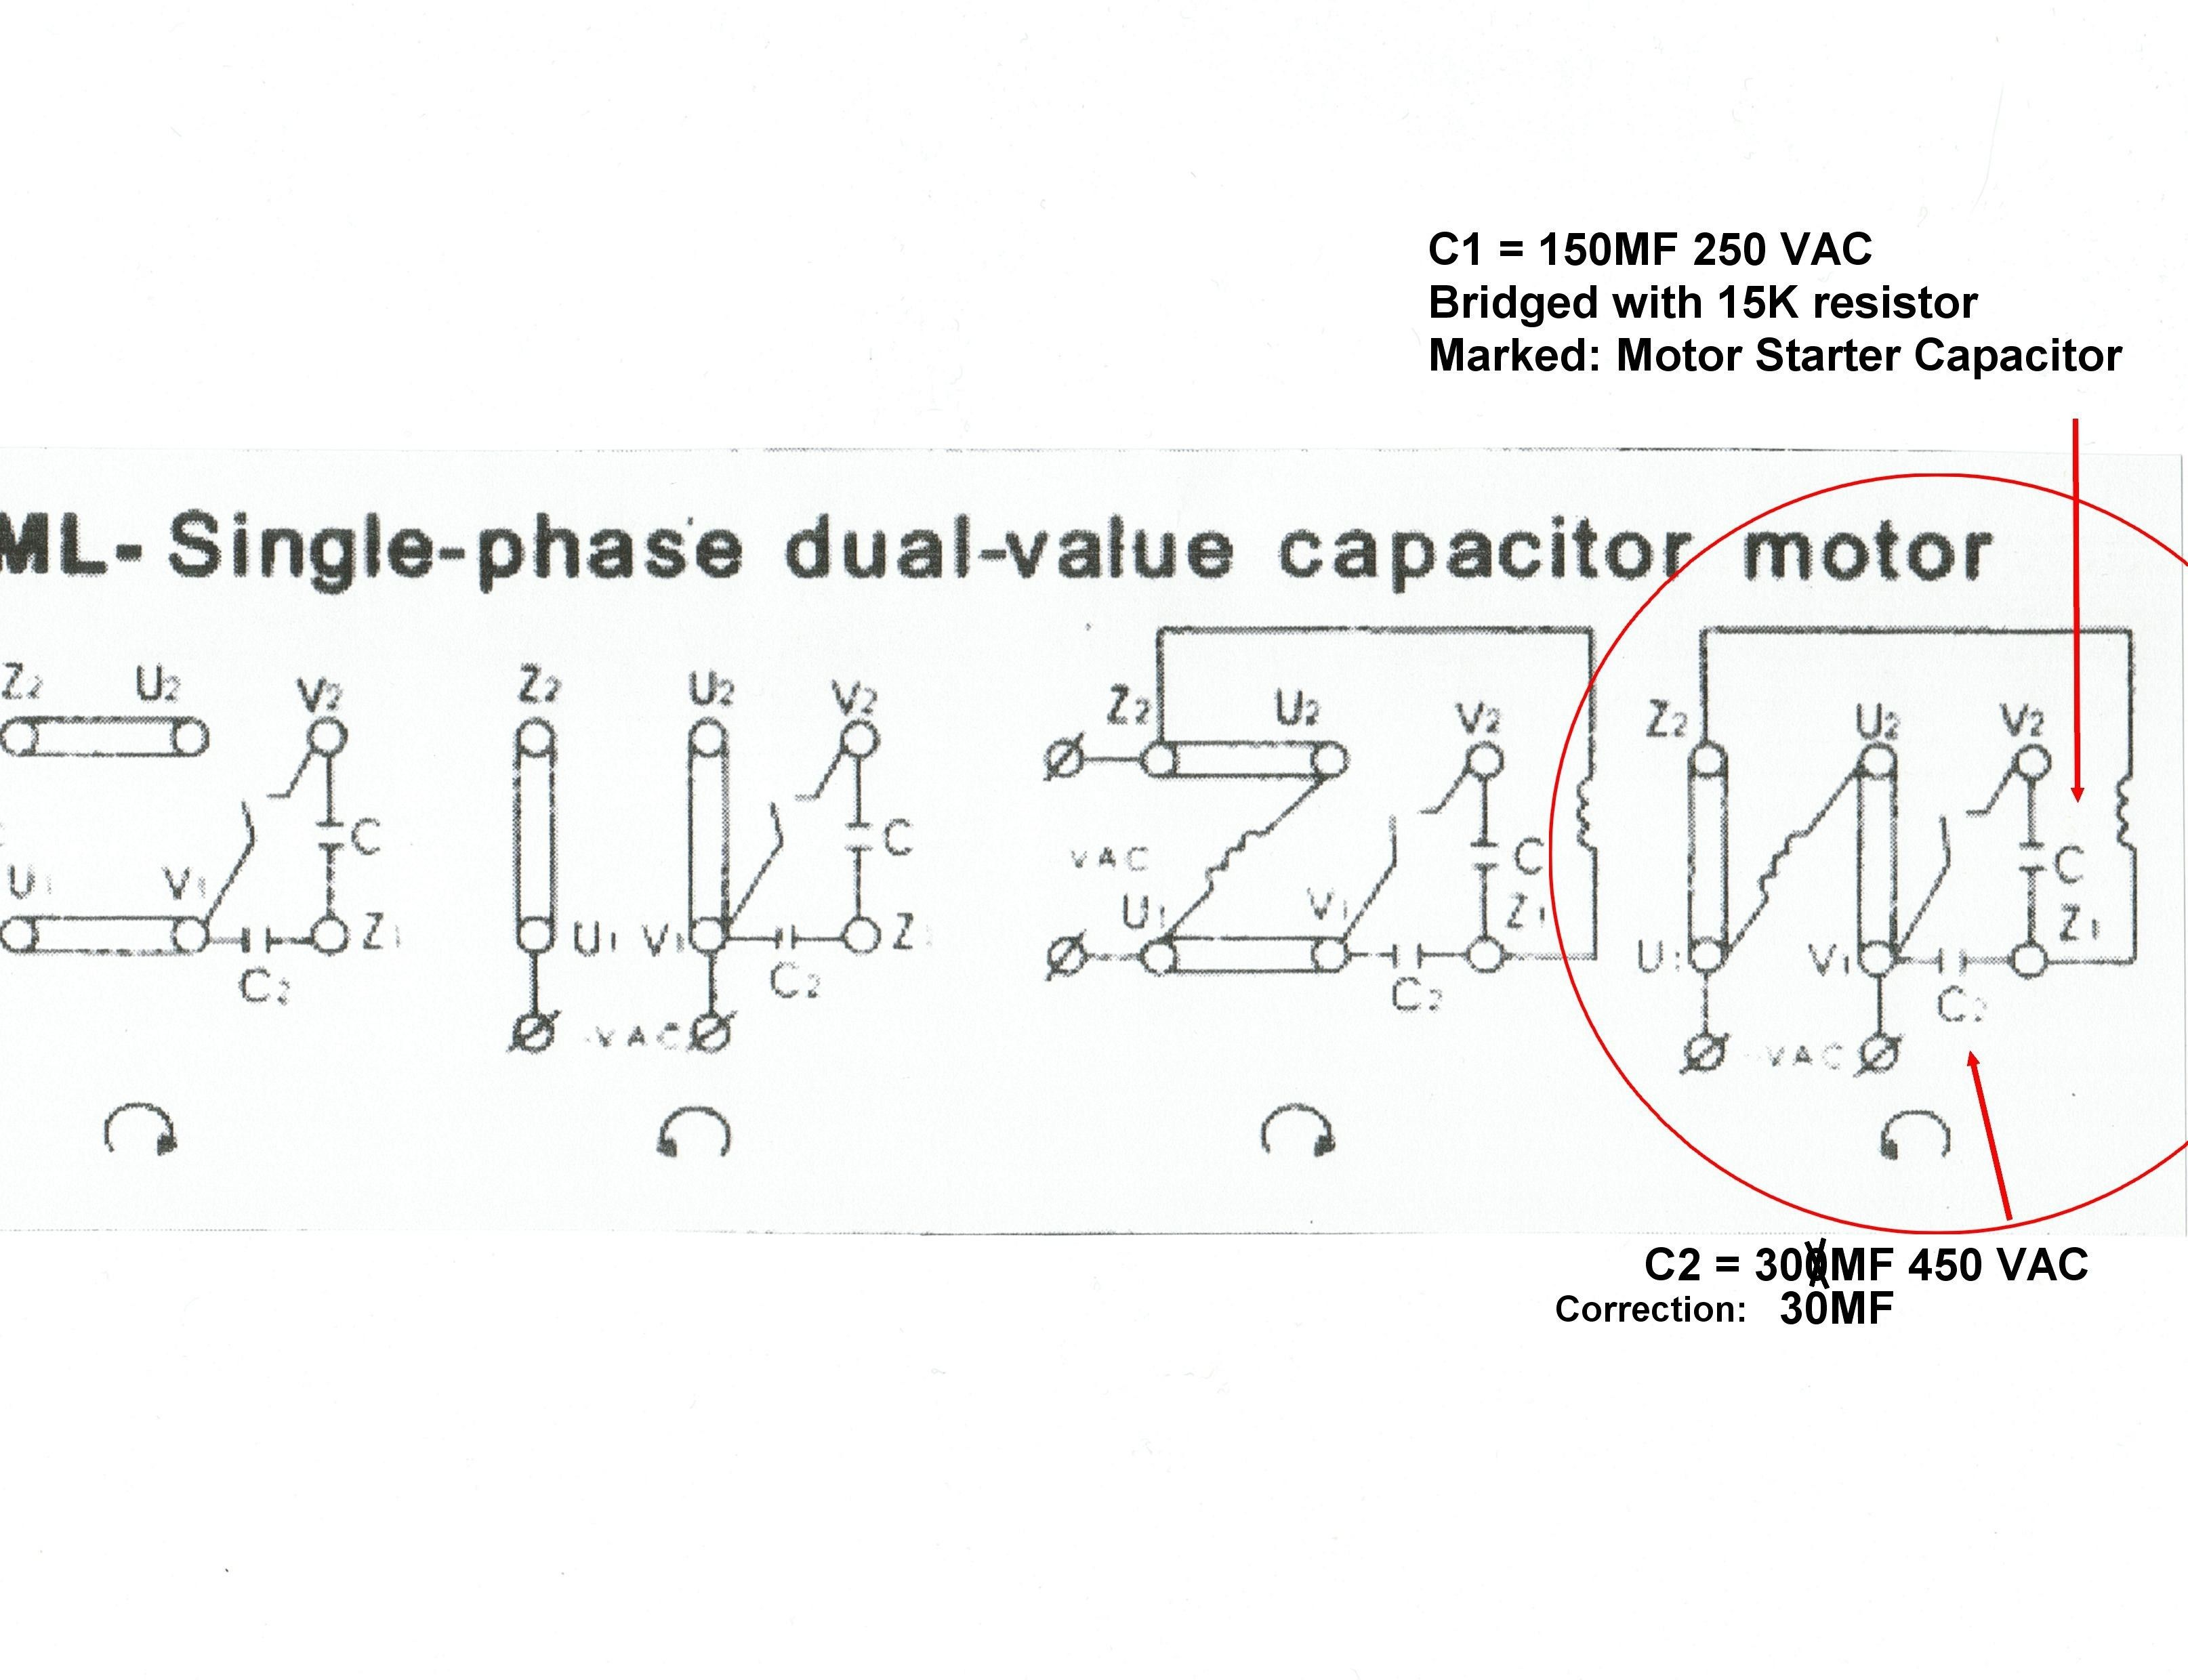 6 wire motor diagram wiring diagram operations 6 wire wiring diagram 6 lead 2 capacitor motor [ 3229 x 2480 Pixel ]